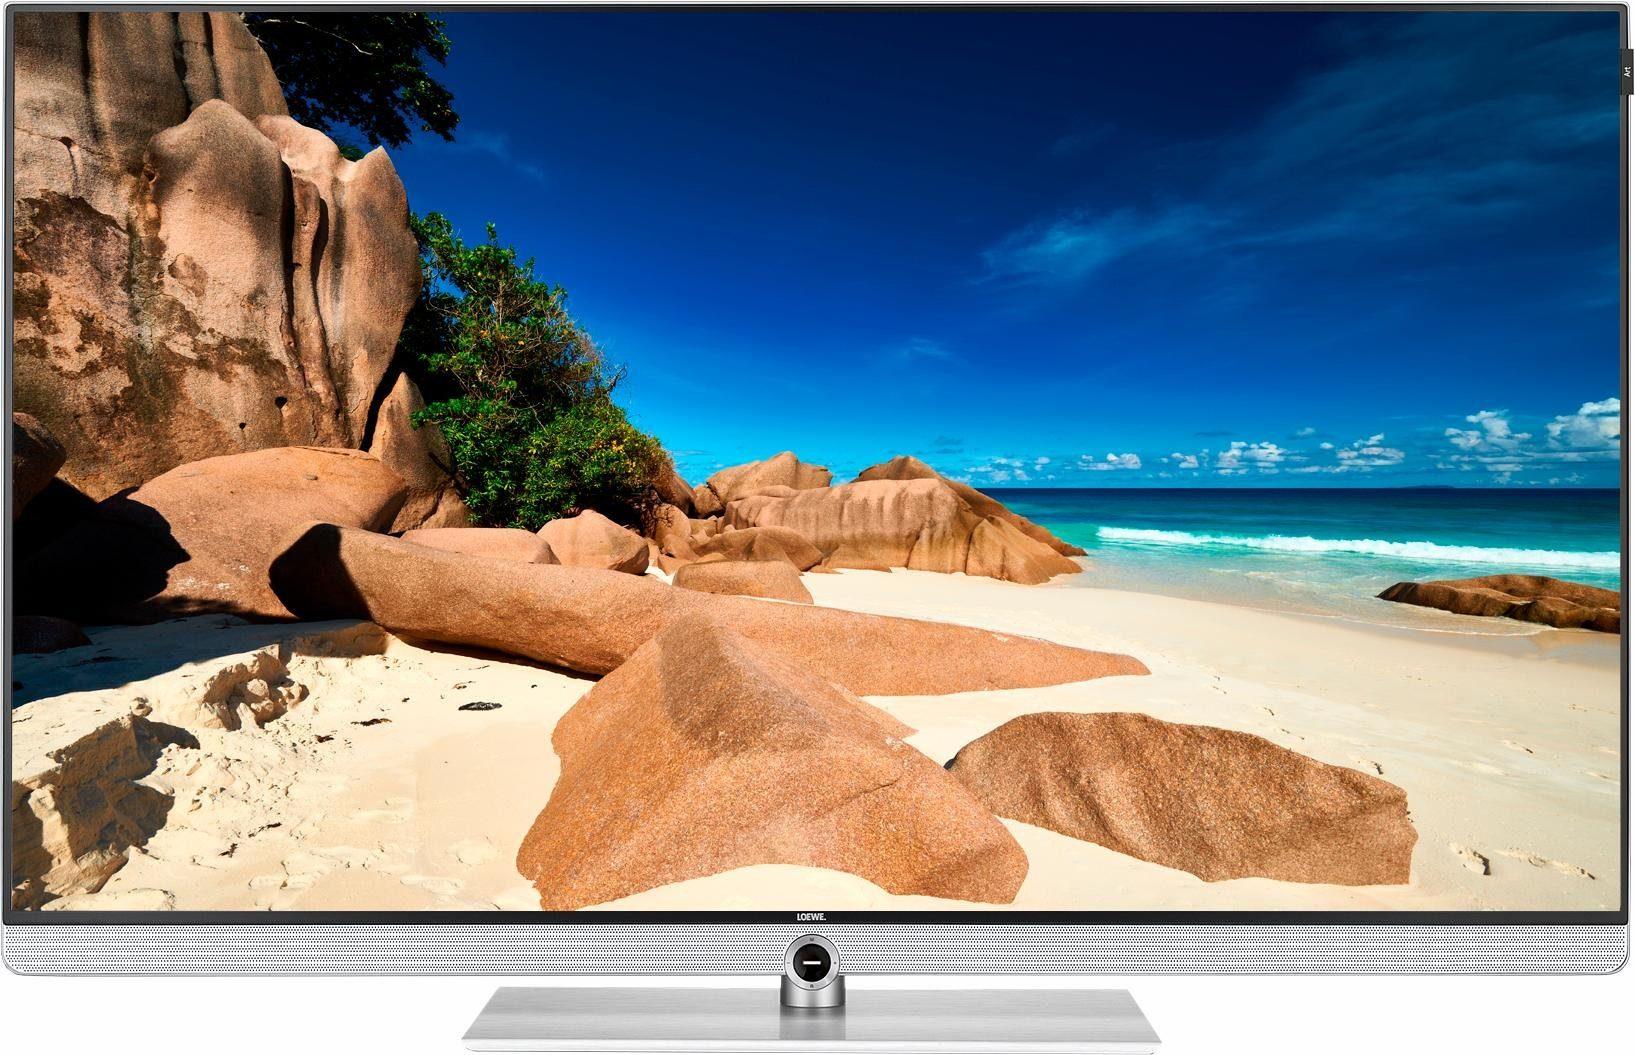 Loewe Art 40 FHD white, LED Fernseher, 102 cm (40 Zoll), 1080p (Full HD), Smart-TV